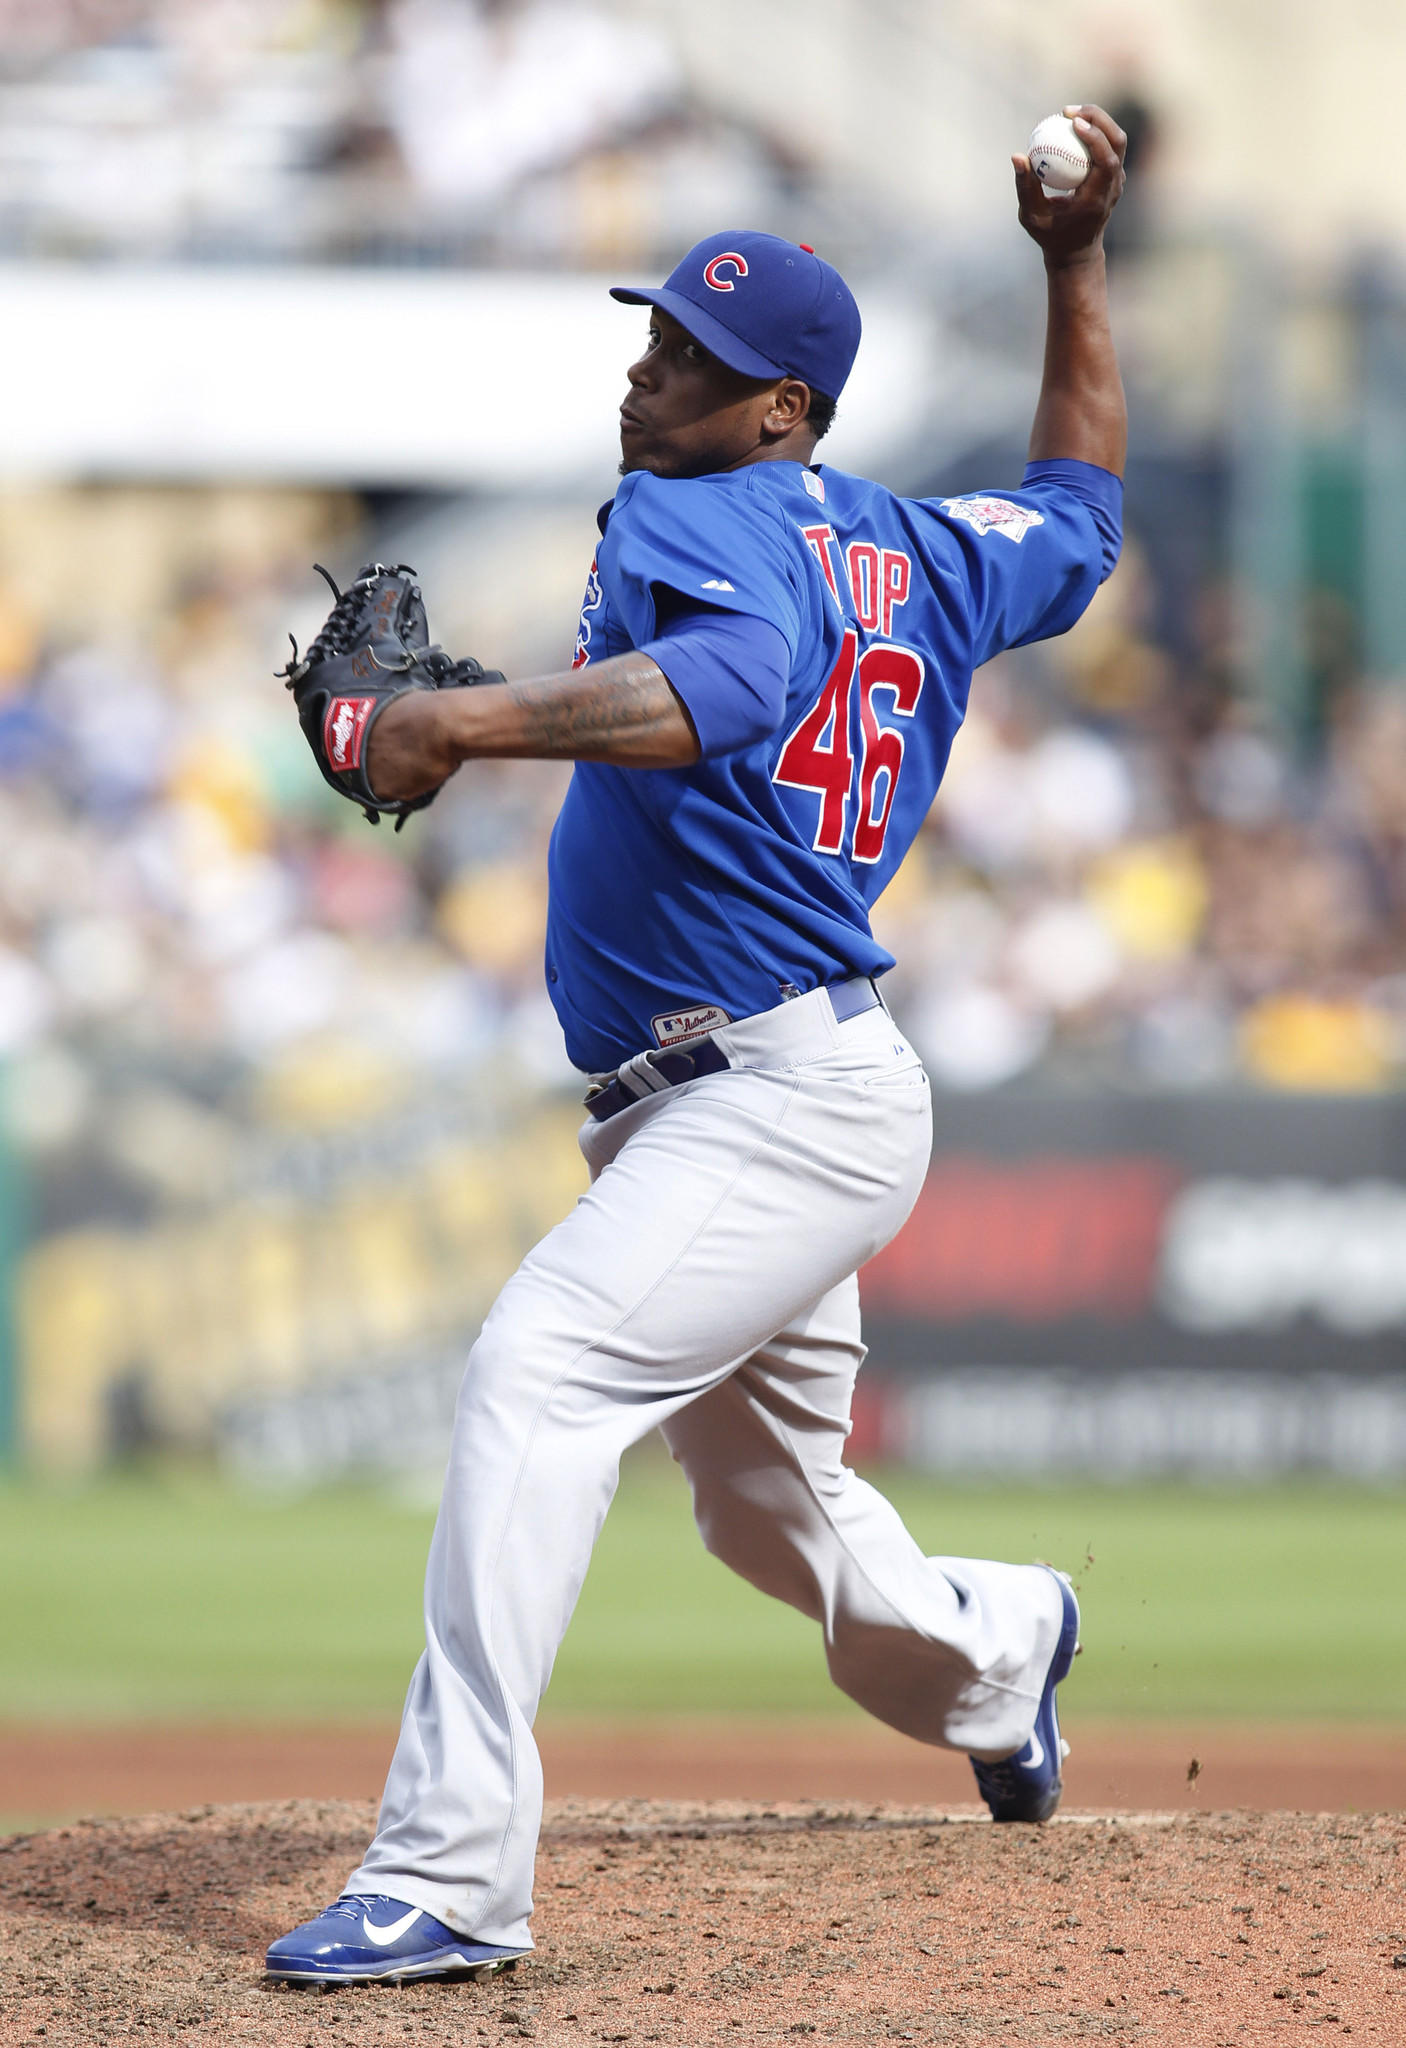 Cubs relief pitcher Pedro Strop during a game in September.